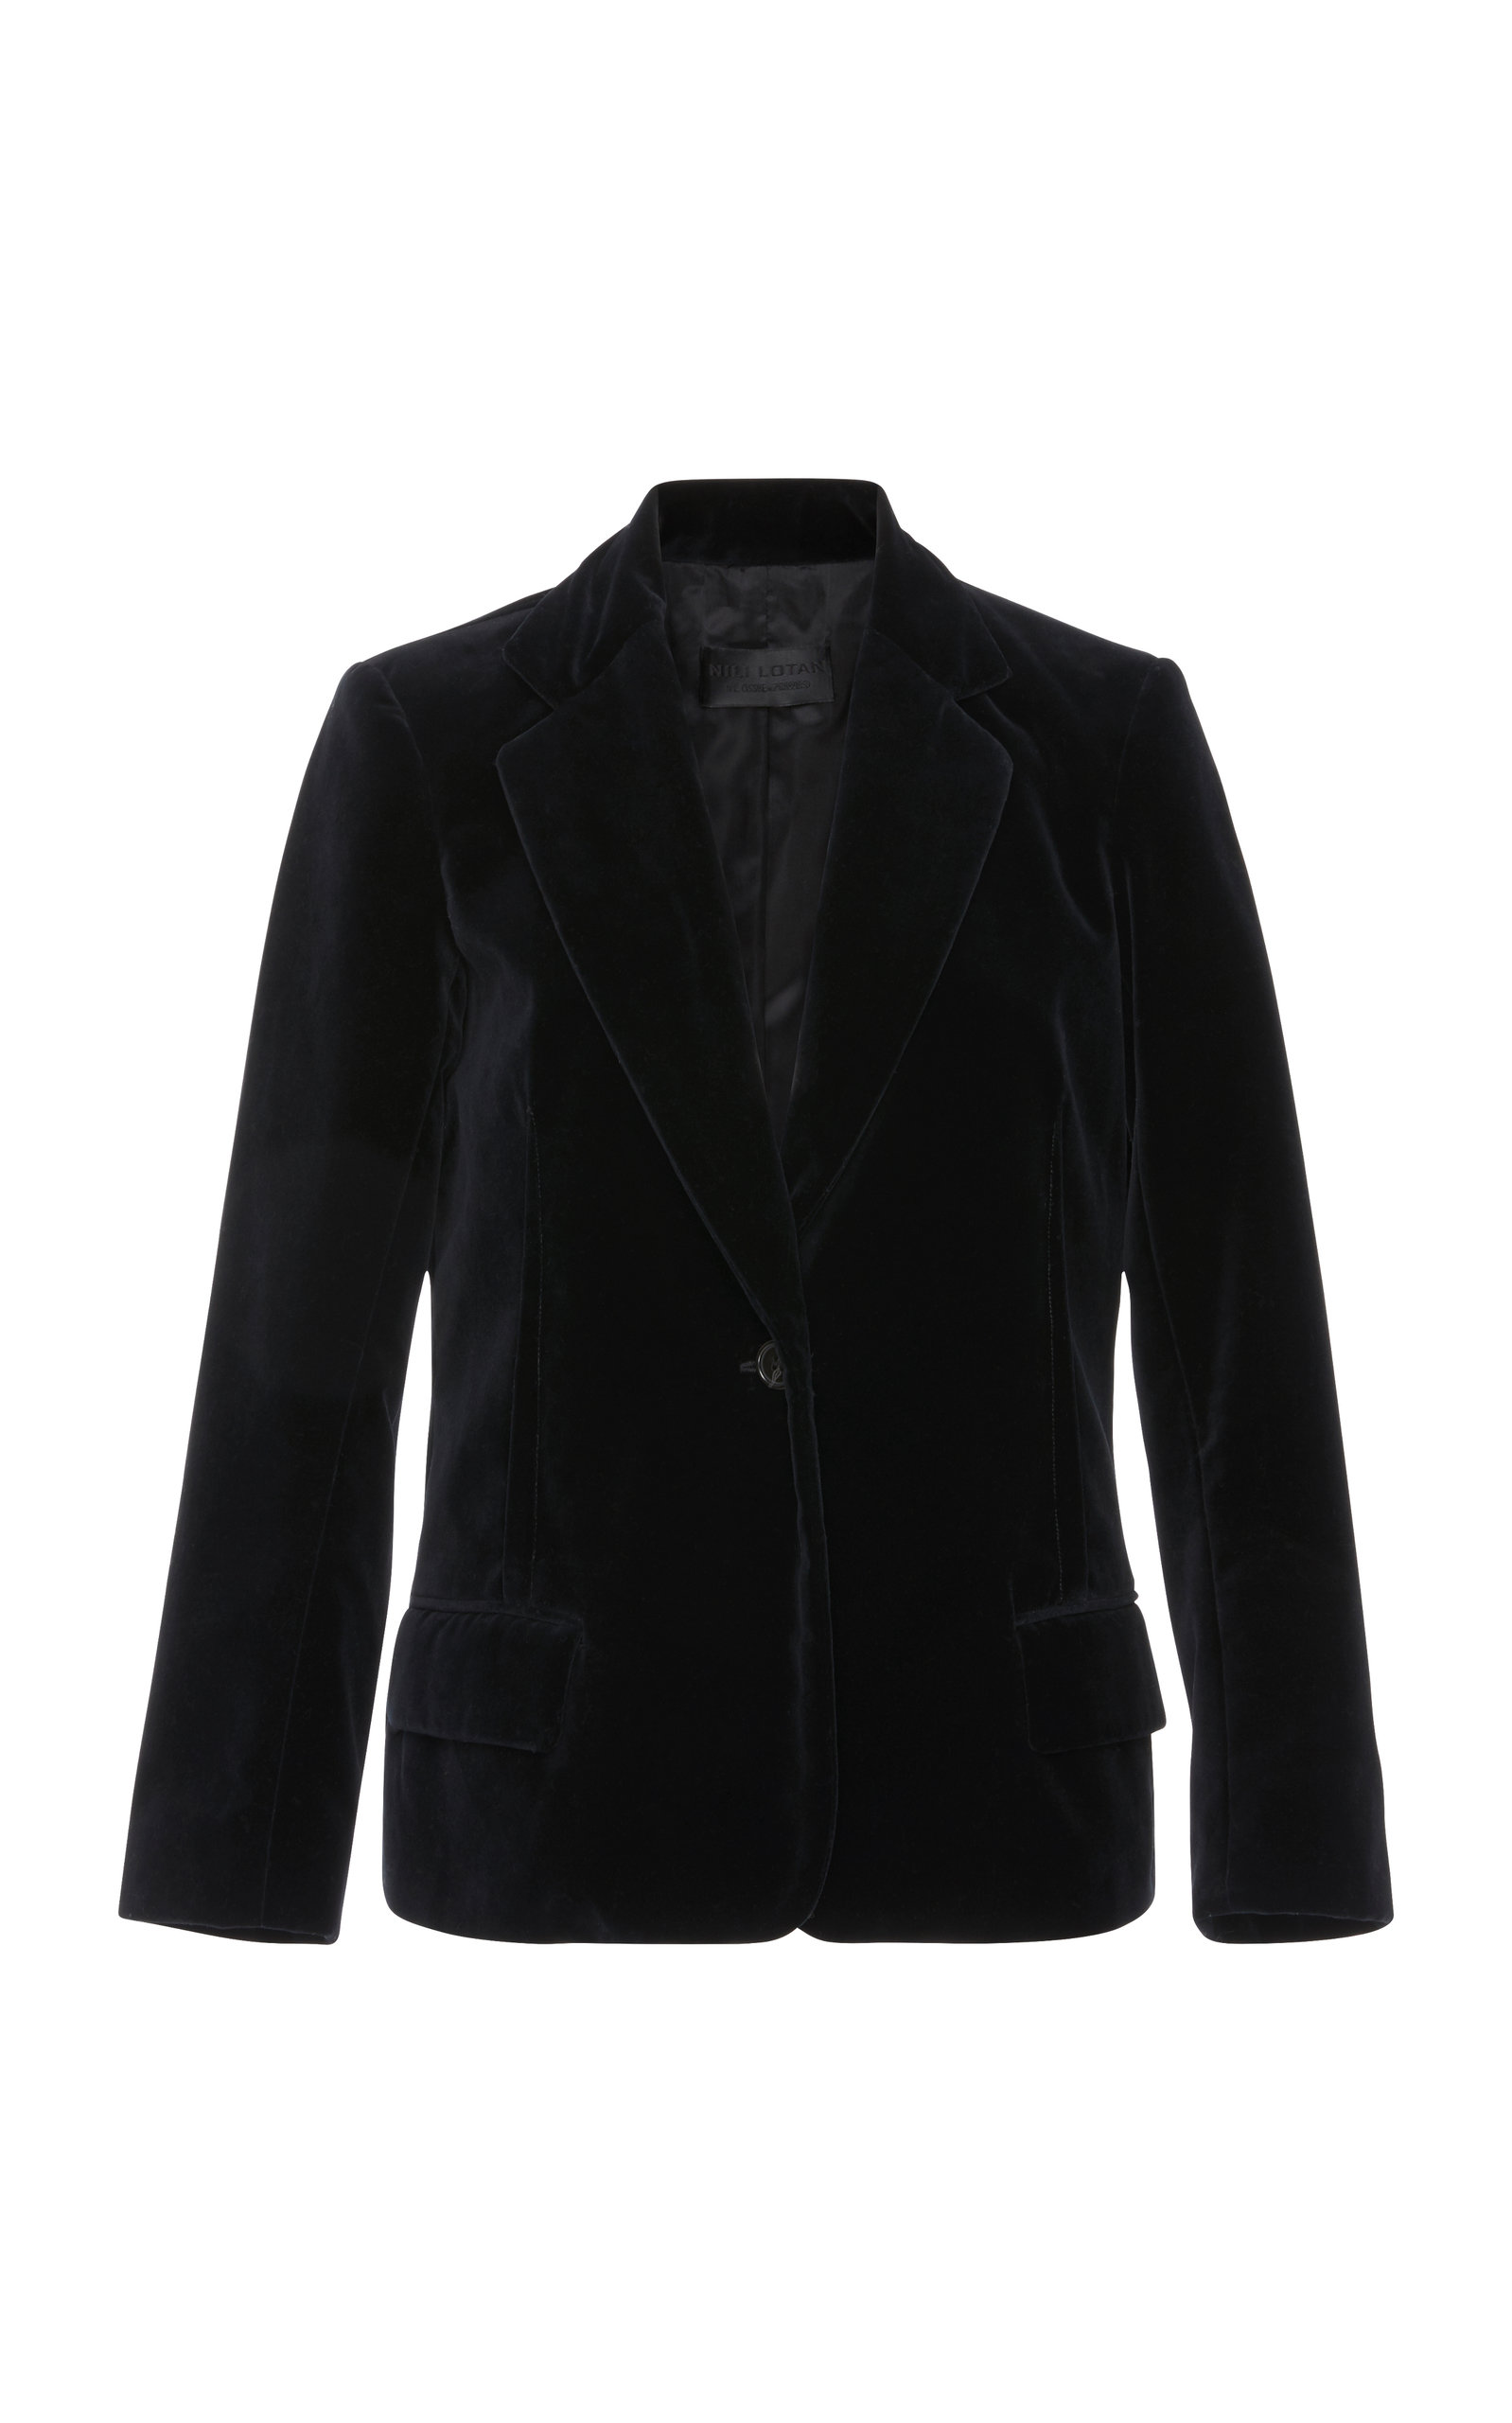 Humphrey Velvet Jacket in Black